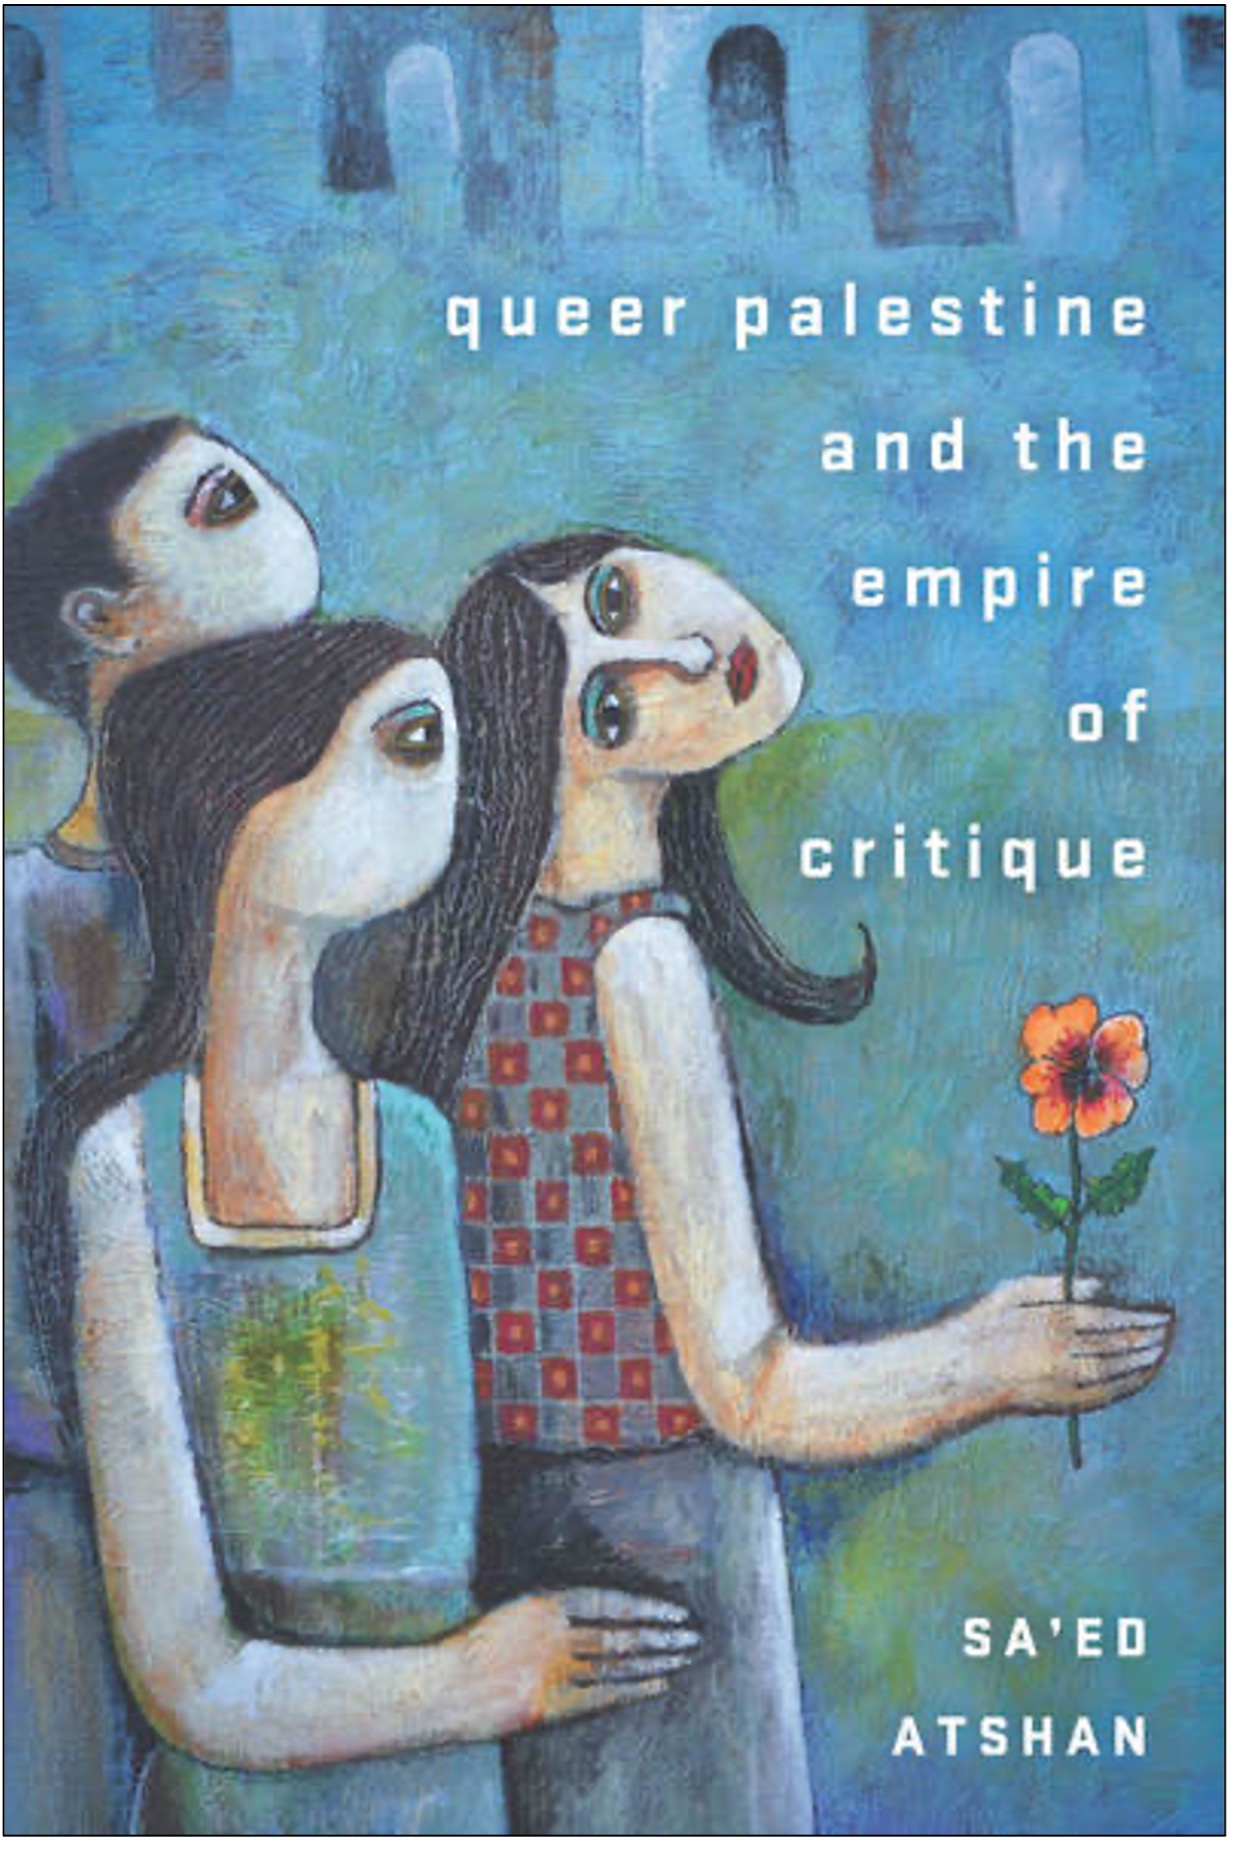 Sa'ed Atshan, Queer Palestine and the Empire of Critique